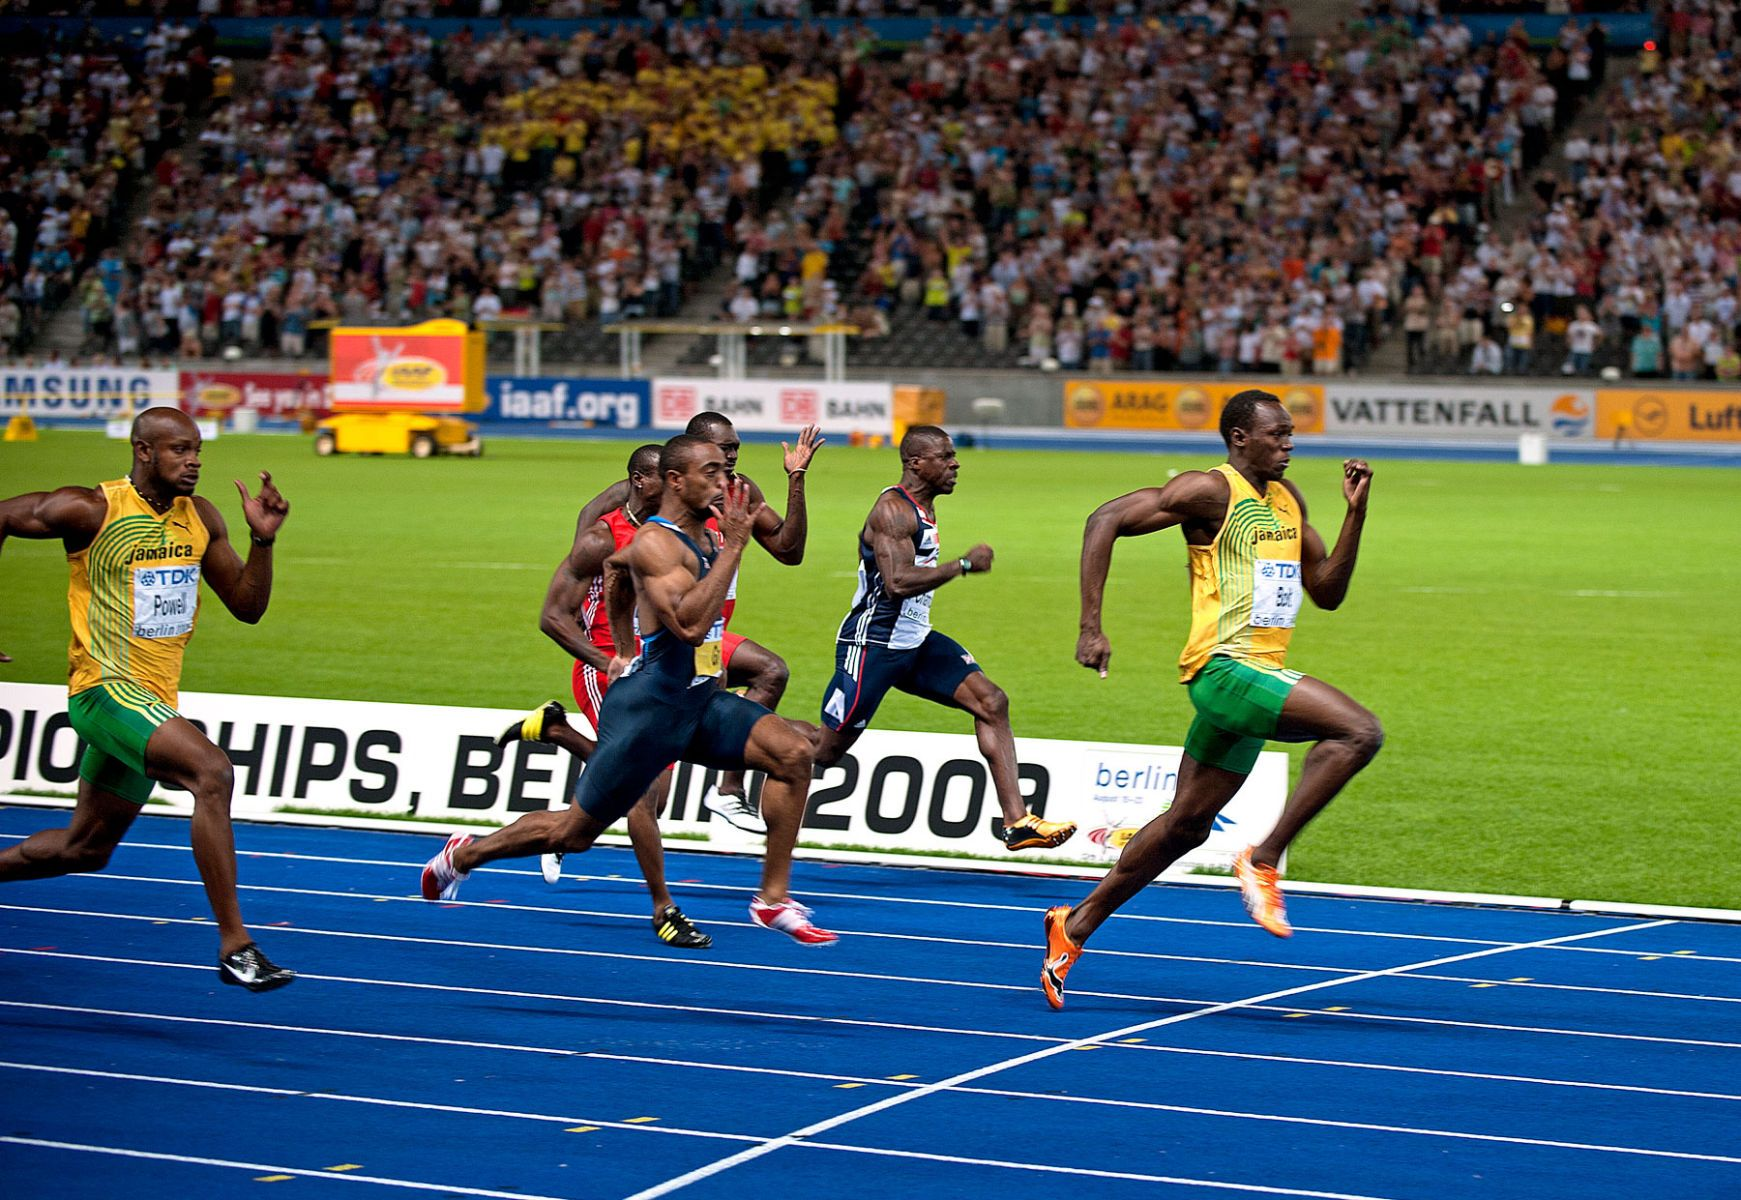 1wc_berlin_2009_usain_bolt_100_final_tyson_gay_track_and_field_image_jeff_cohen_photo_lb.jpg